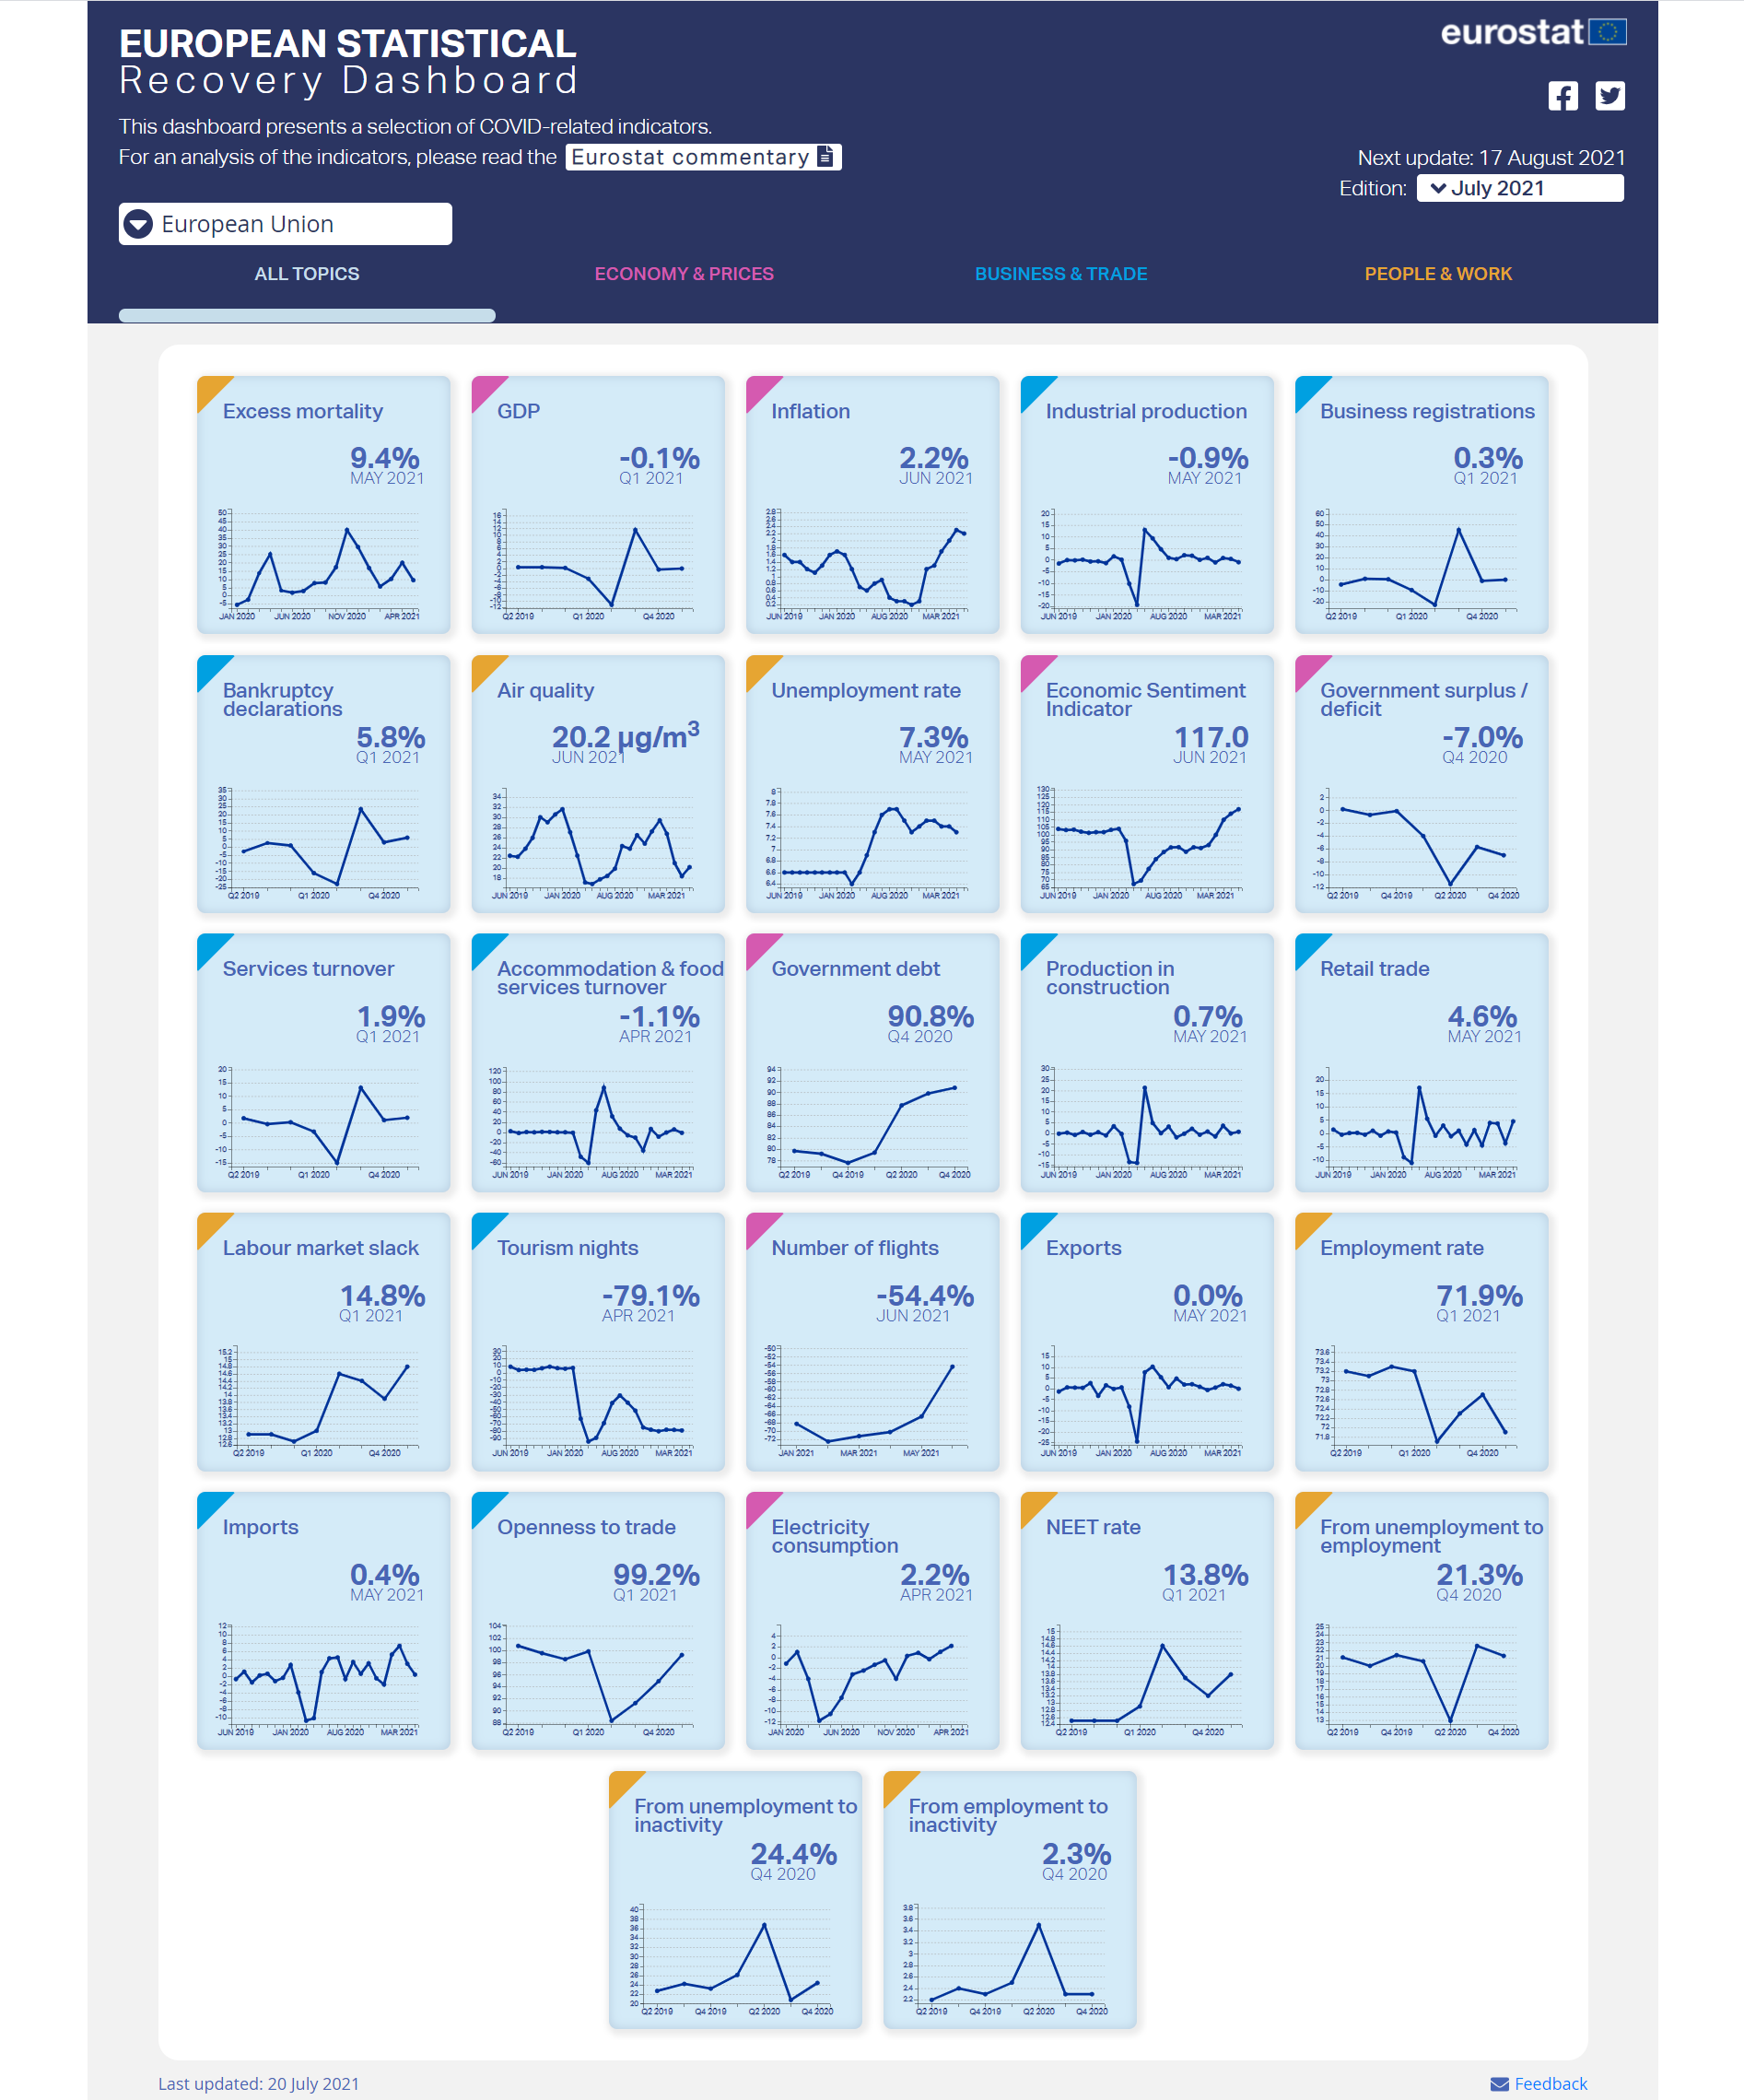 Screenshot of the European Statistical Recovery Dashboard - July edition